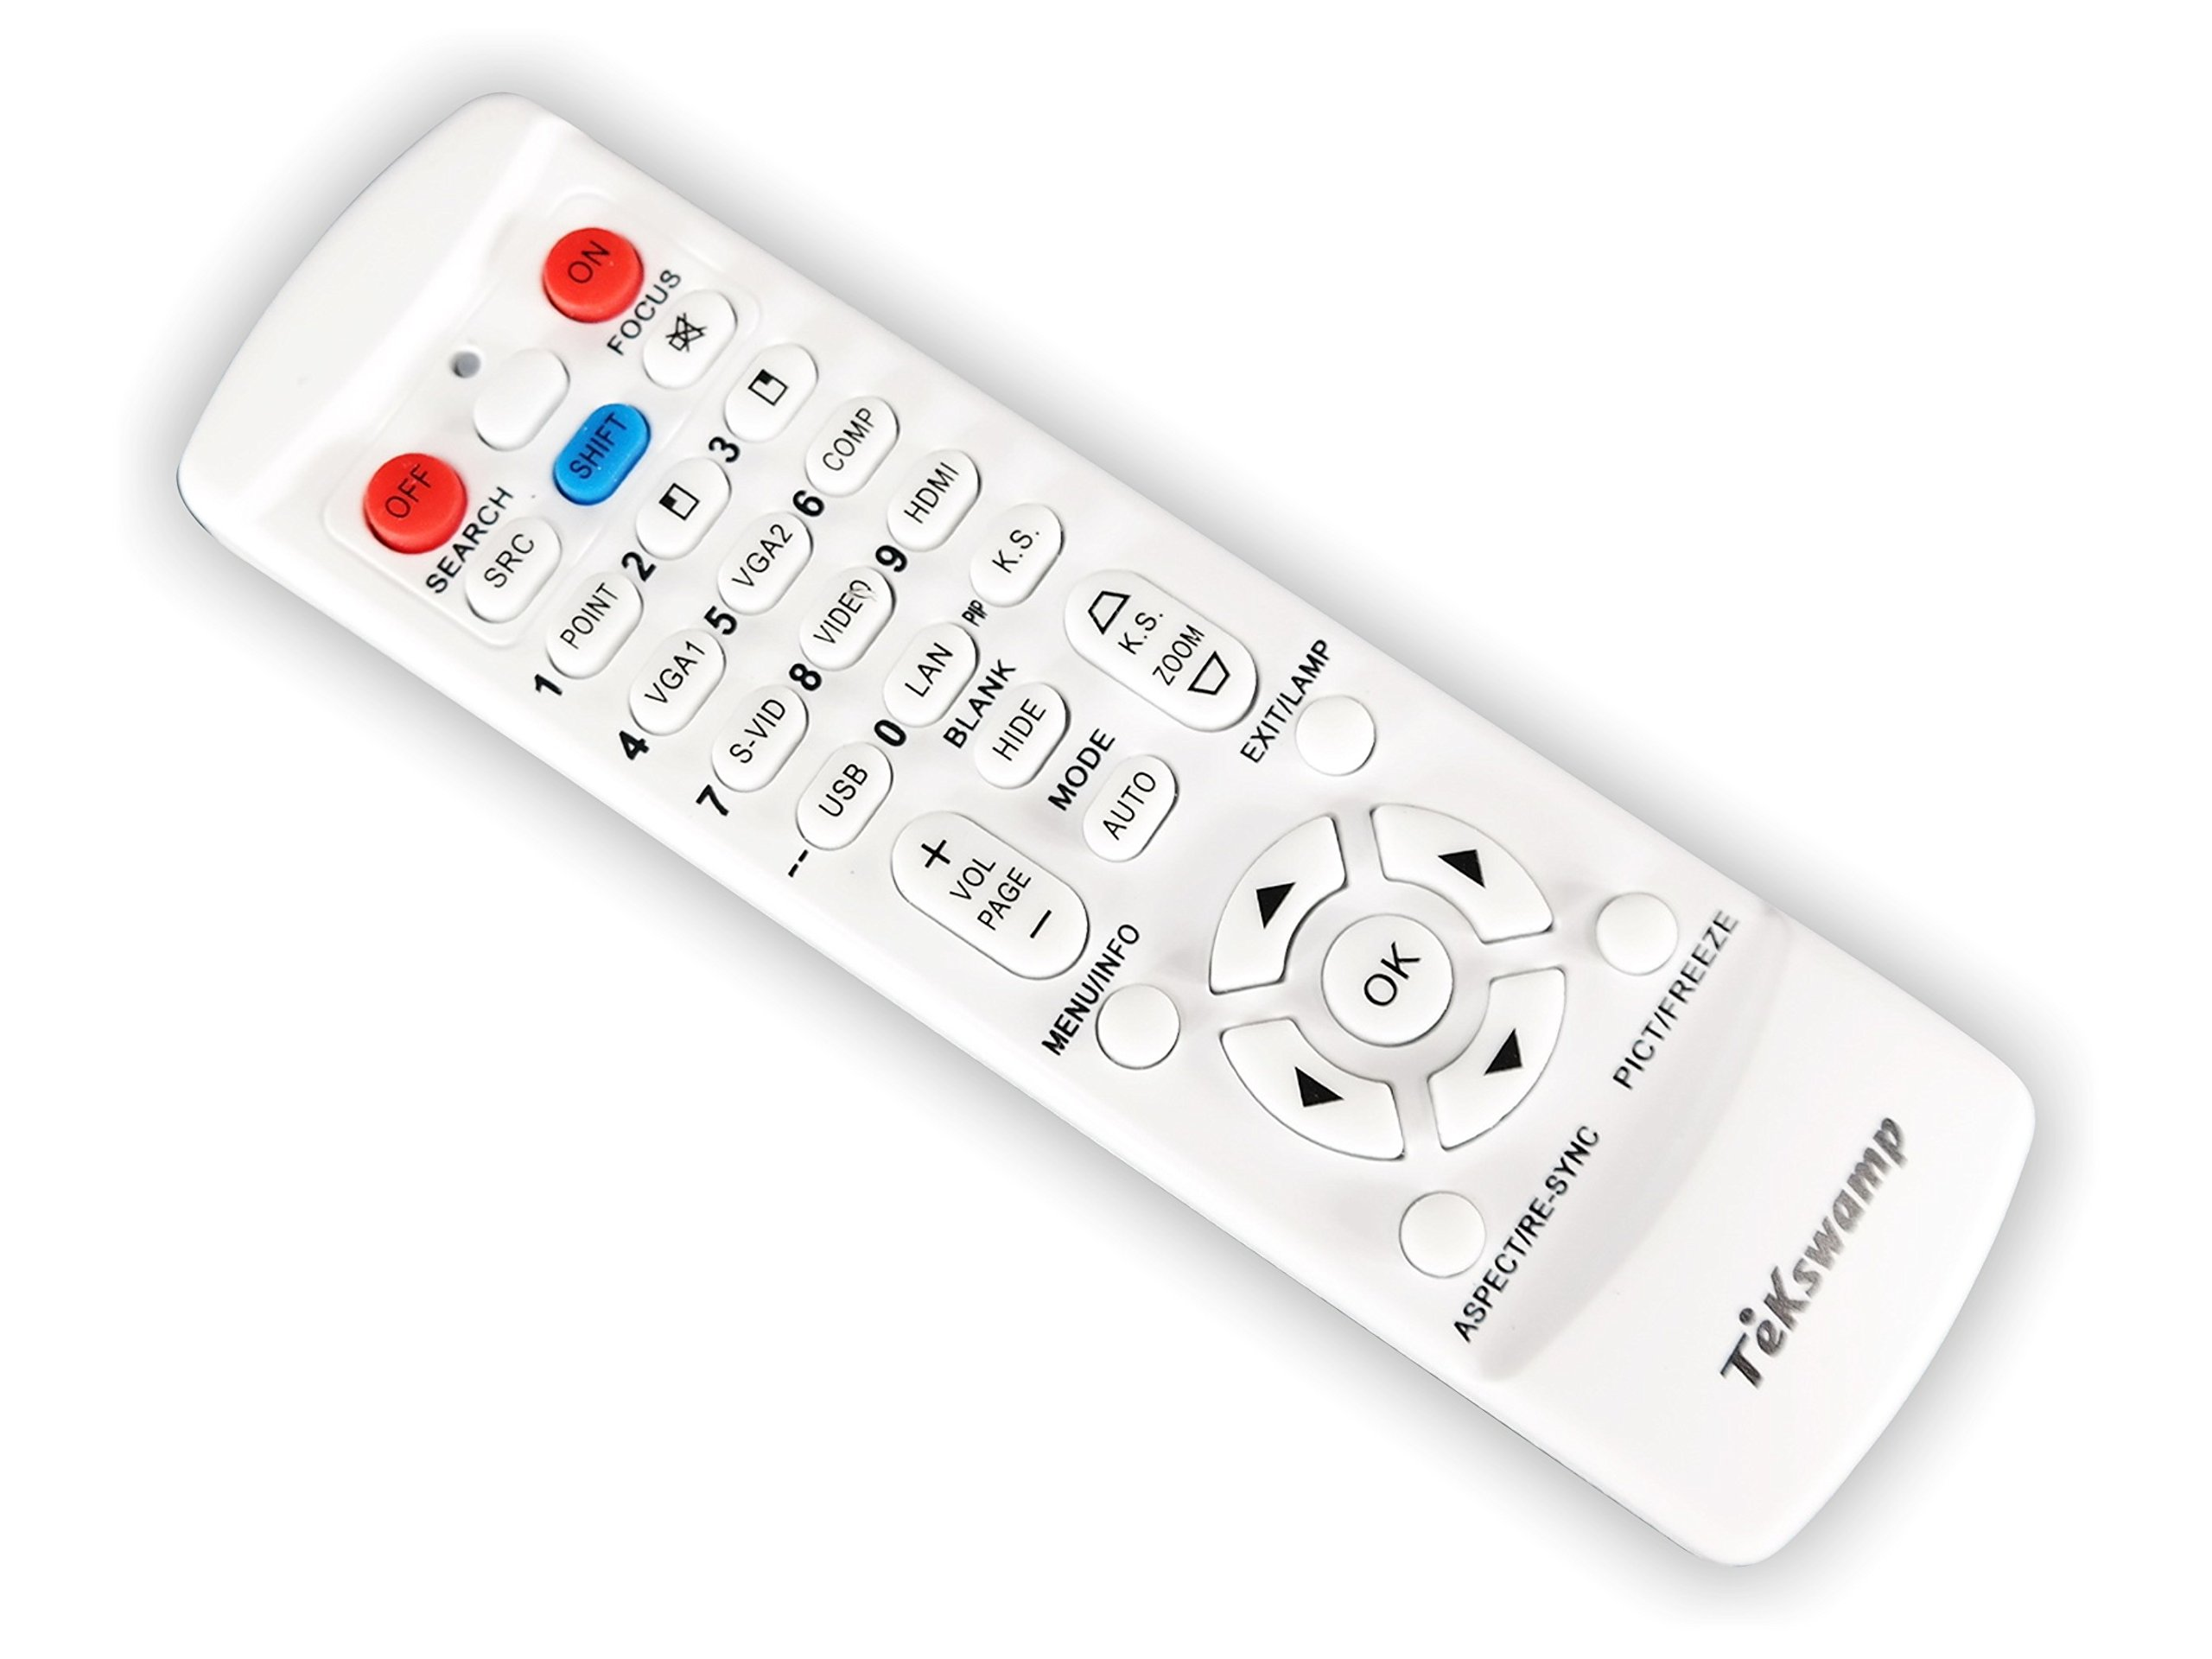 TeKswamp Video Projector Remote Control (White) for Mitsubishi WD570U by Tekswamp